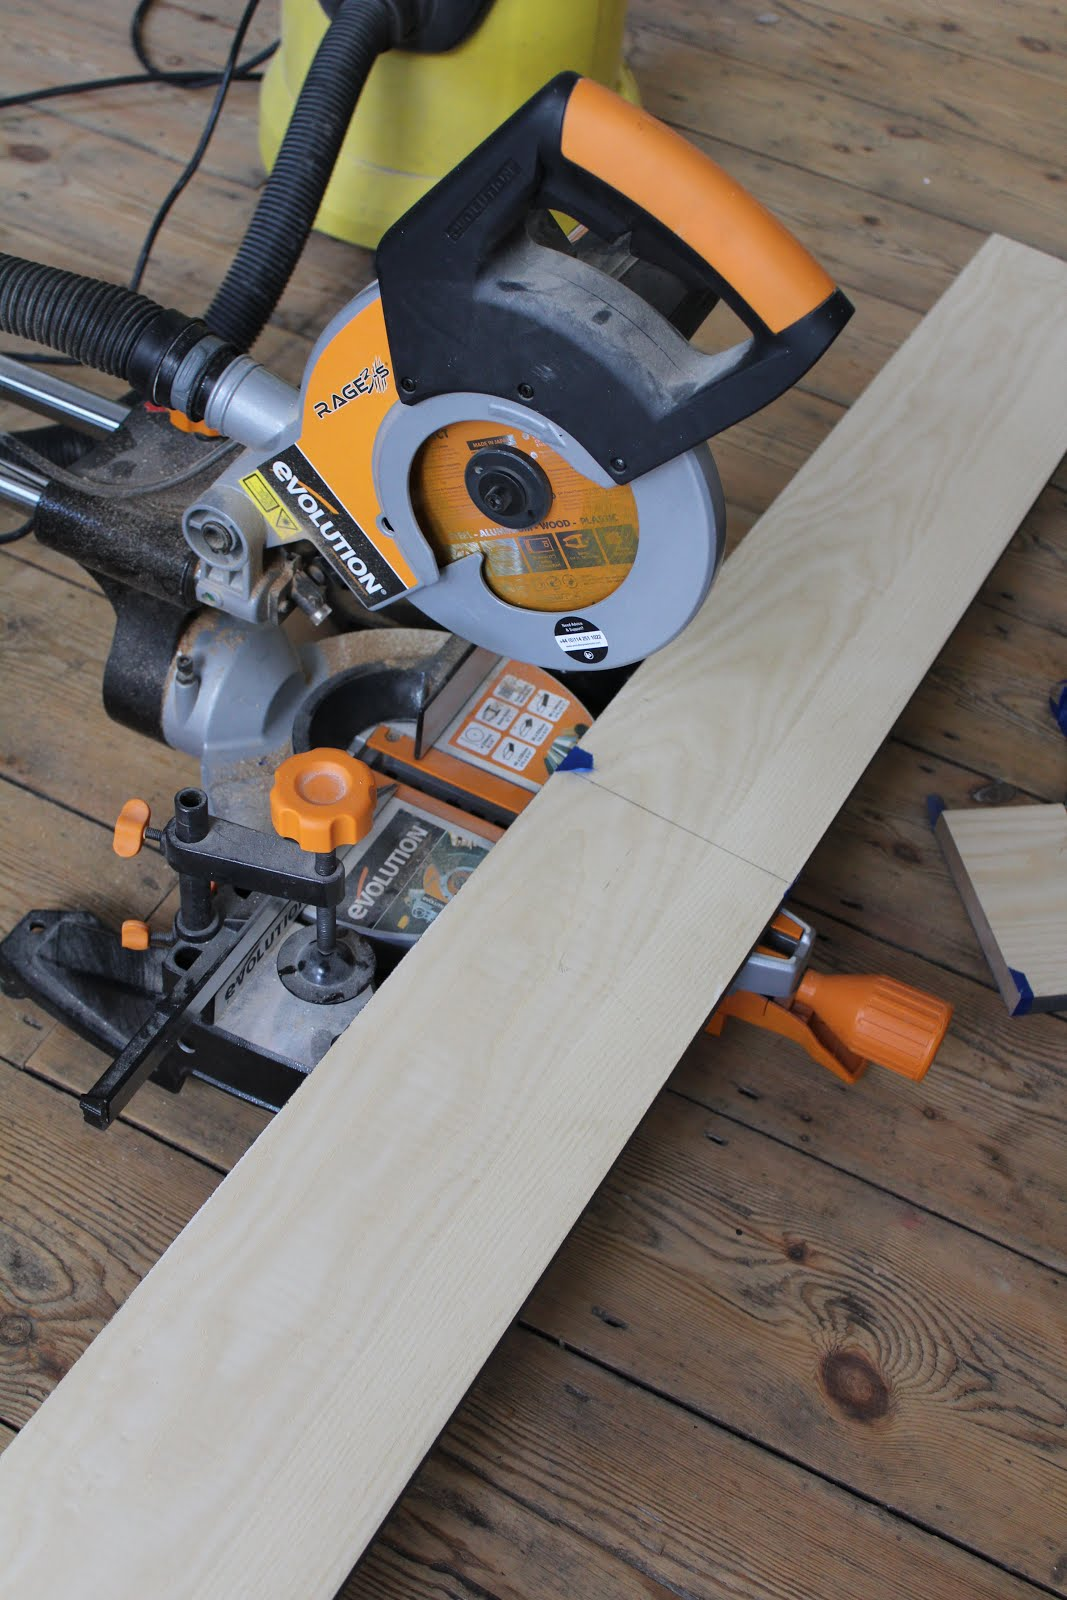 Cutting plinths with mitre saw